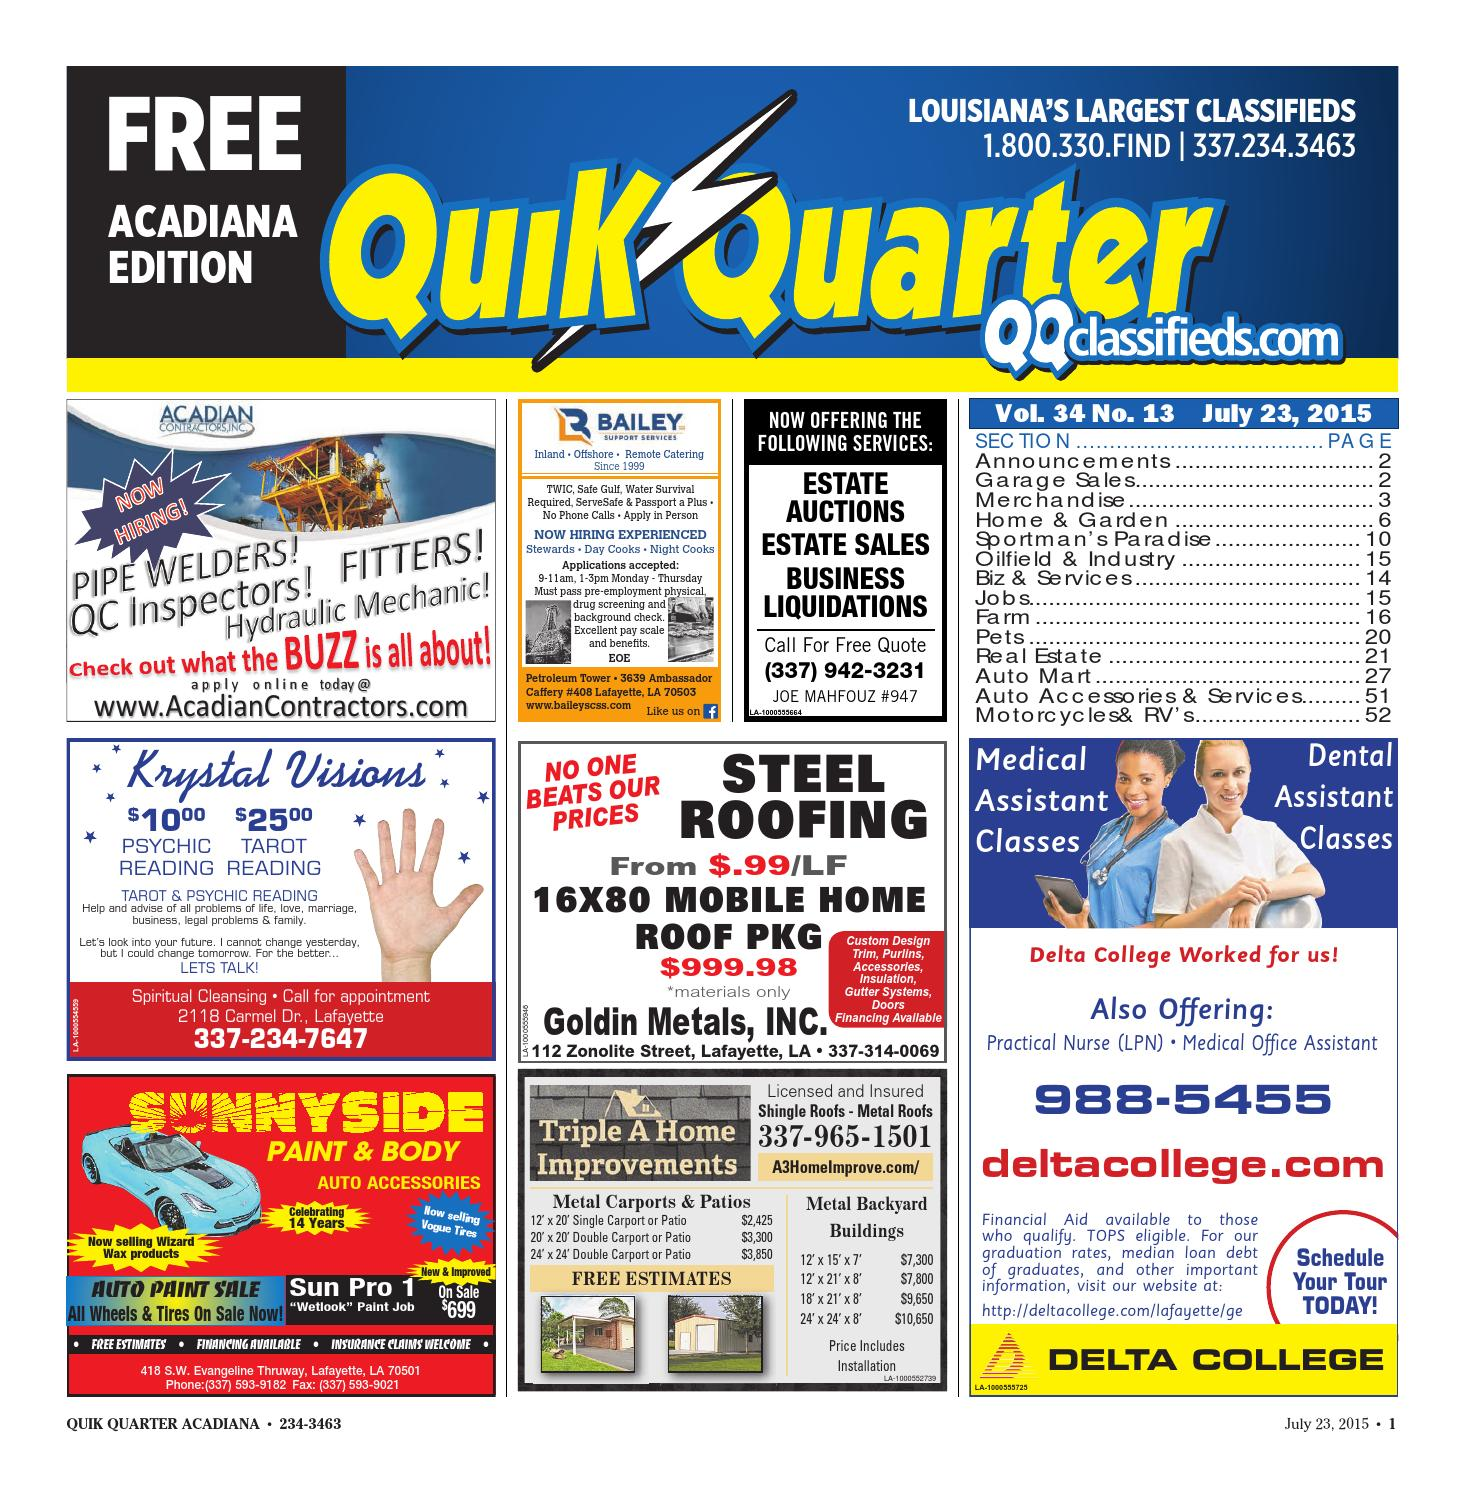 Quik Quarter Acadiana July 23 2015 by Part of the USA TODAY NETWORK